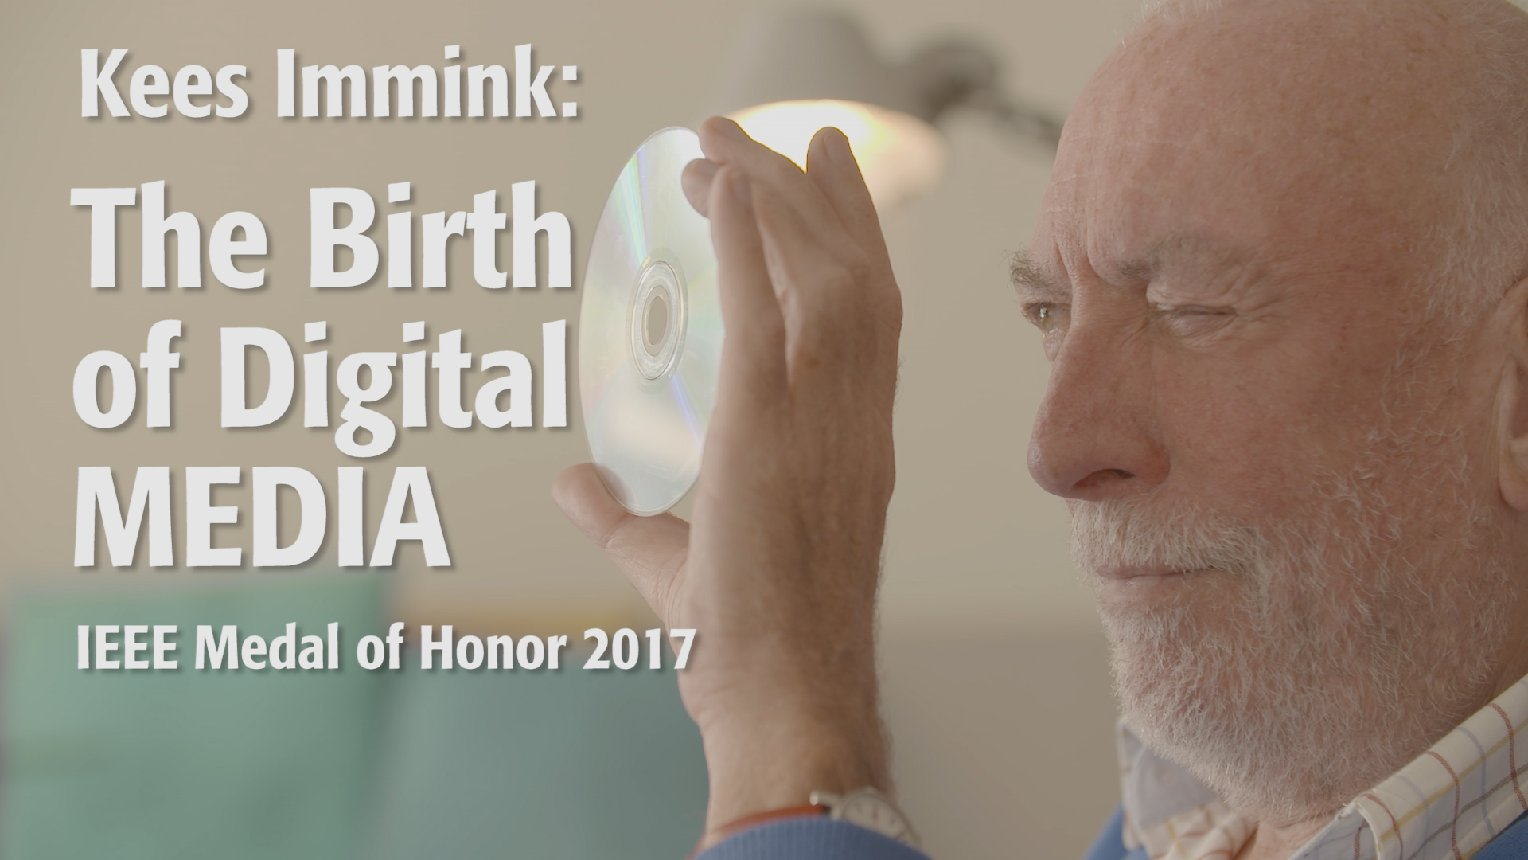 Kees Immink, 2017 IEEE Medal of Honor